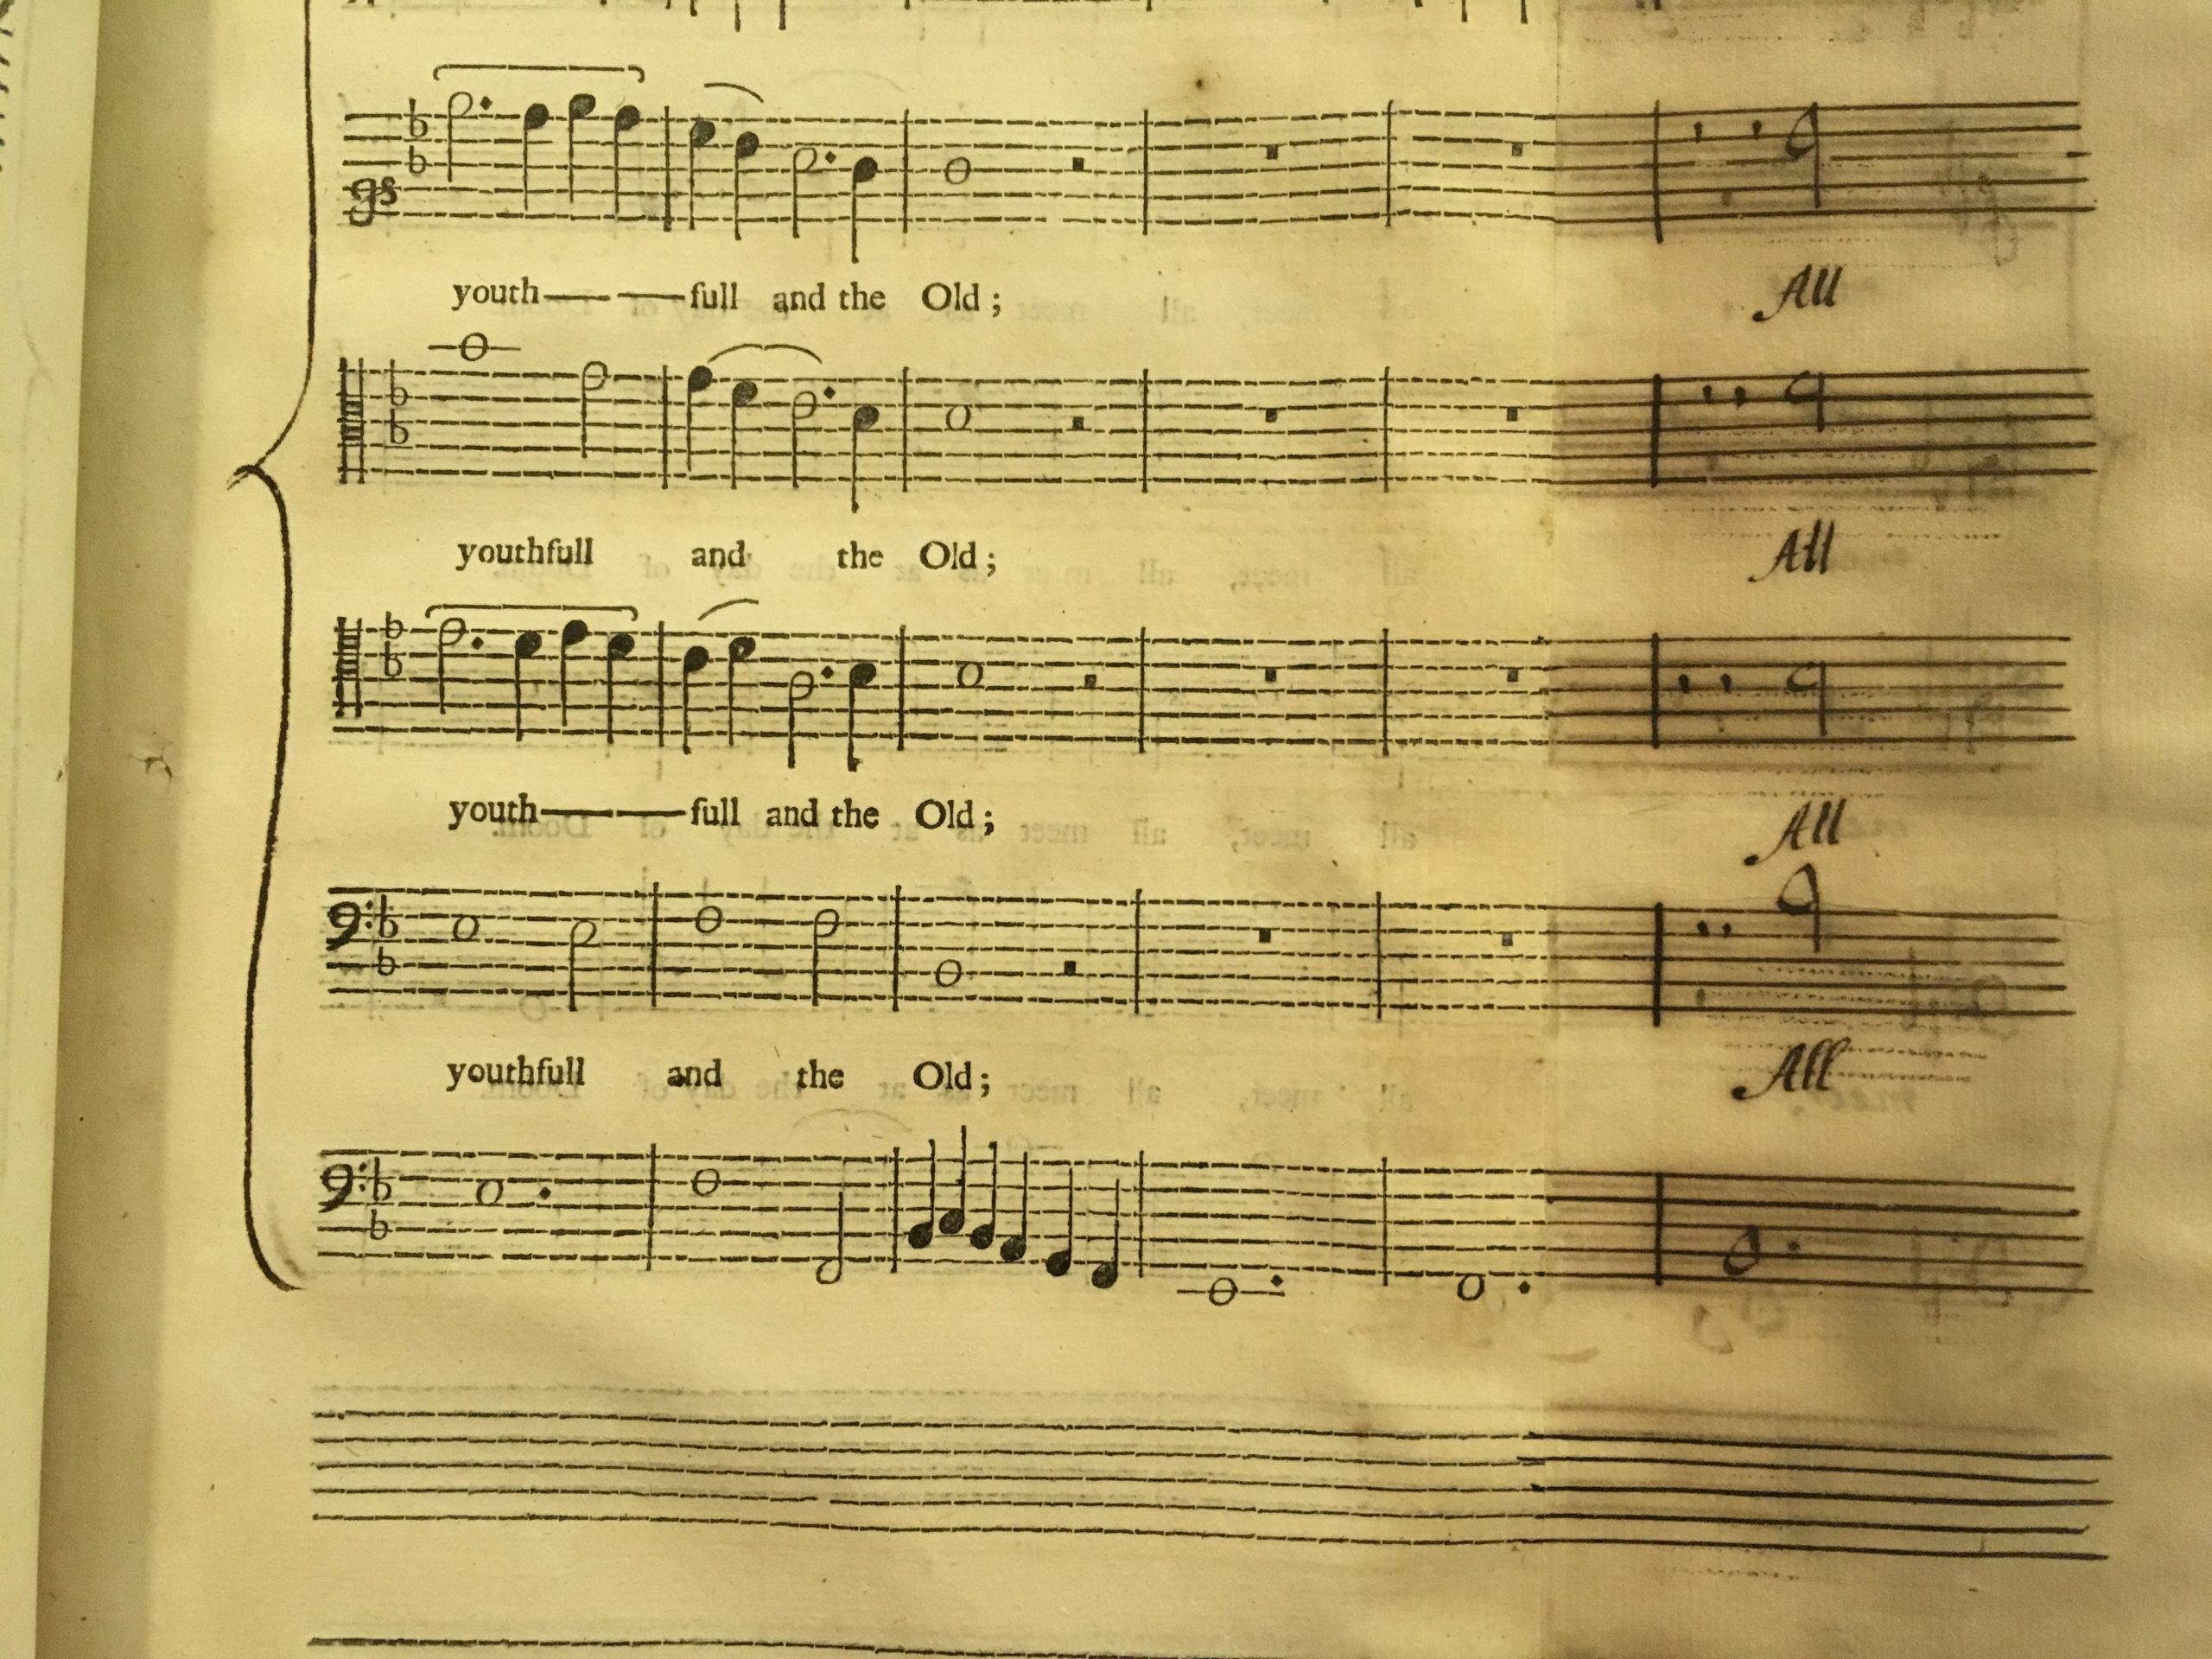 Old musical note music sheet